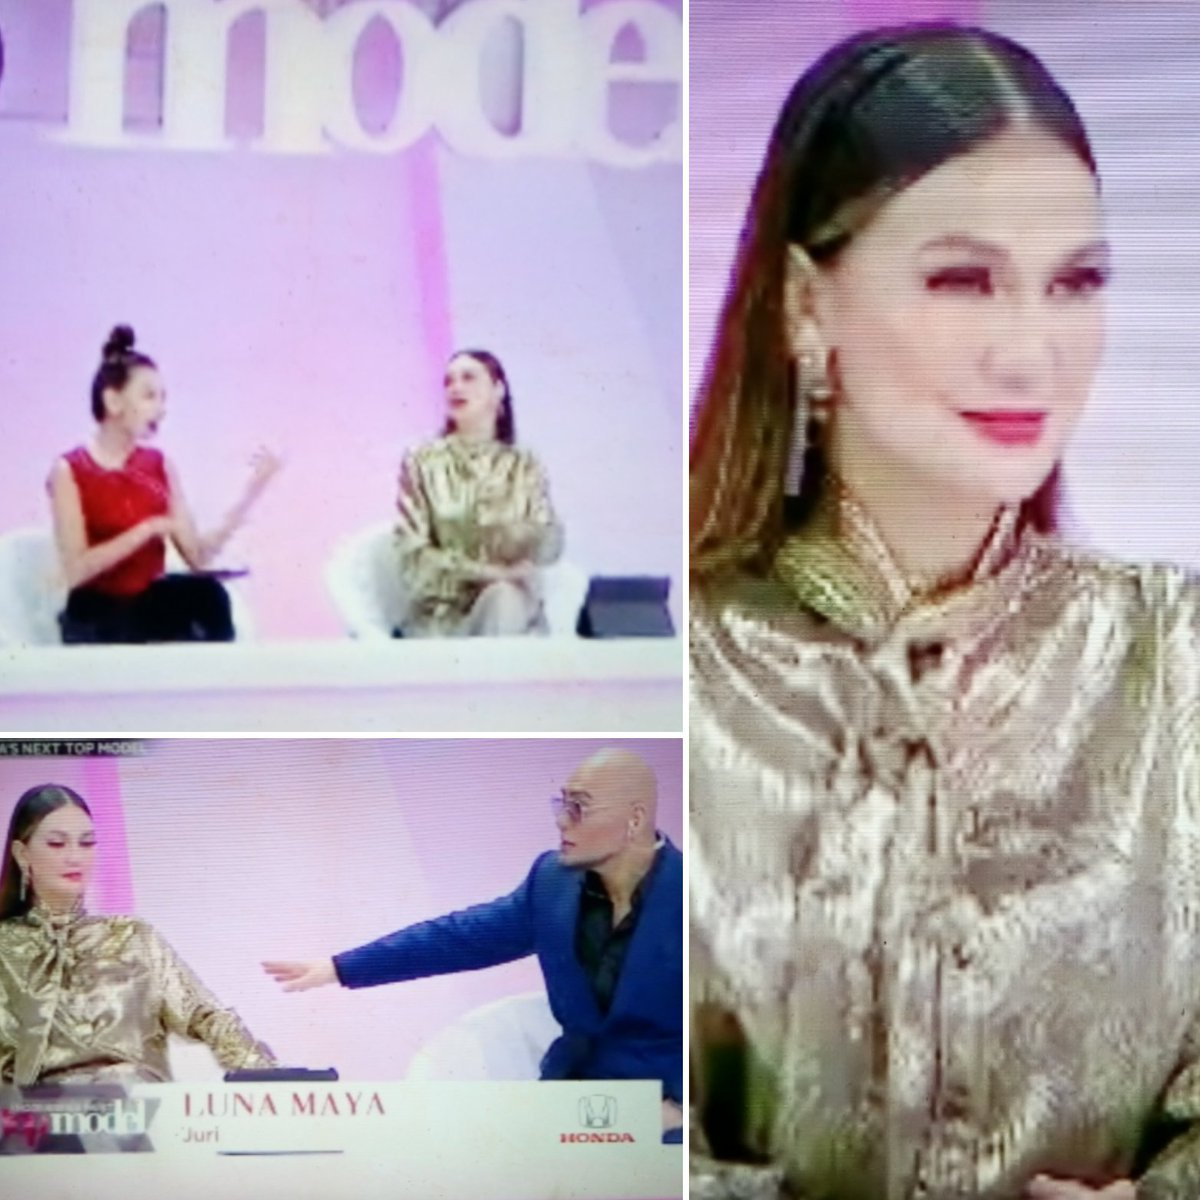 Always beautiful @LunaMaya26 😍 di Indonesia's Next Top Model @netmediatama comentar @corbuzier ok juga dan ada petuahnya....mantap👍 #indonesiasnexttopmodel #lunamaya